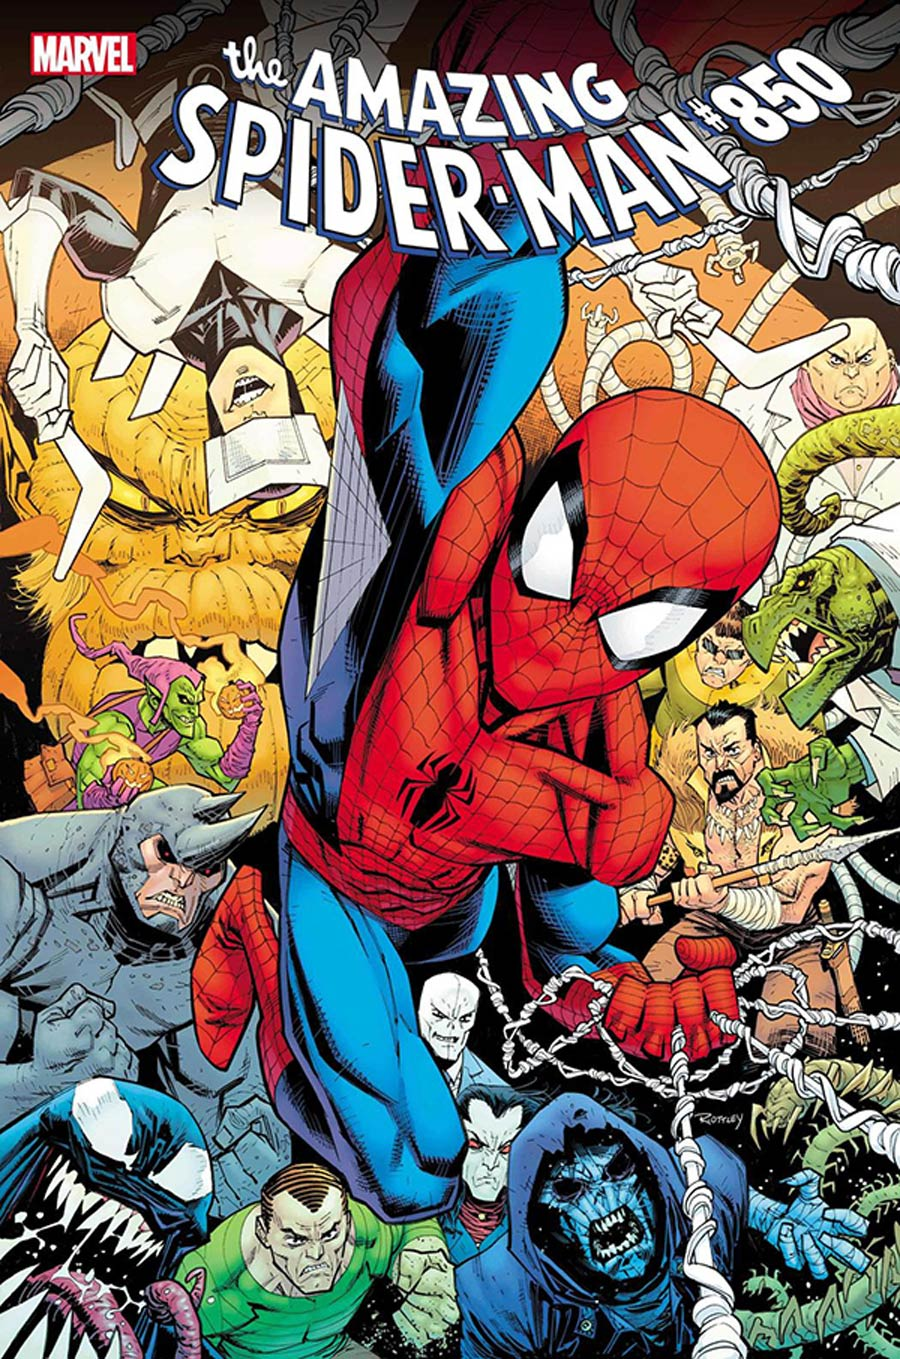 Amazing Spider-Man Vol 5 #850 Cover S DF Signed By Nick Spencer (#49)